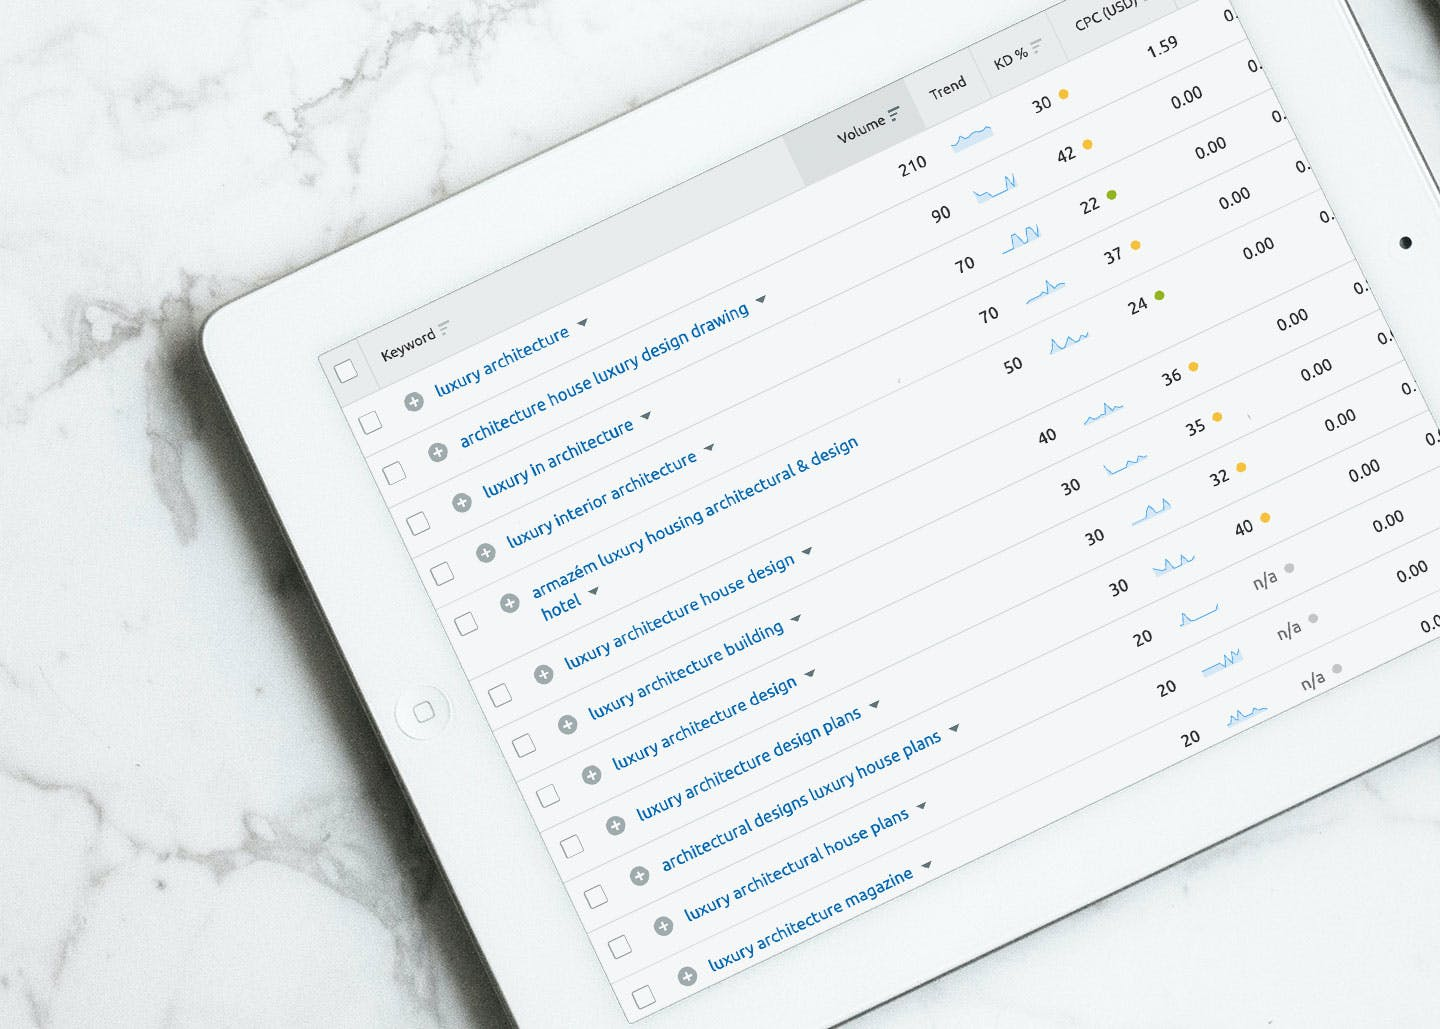 Architecture keyword research on a tablet